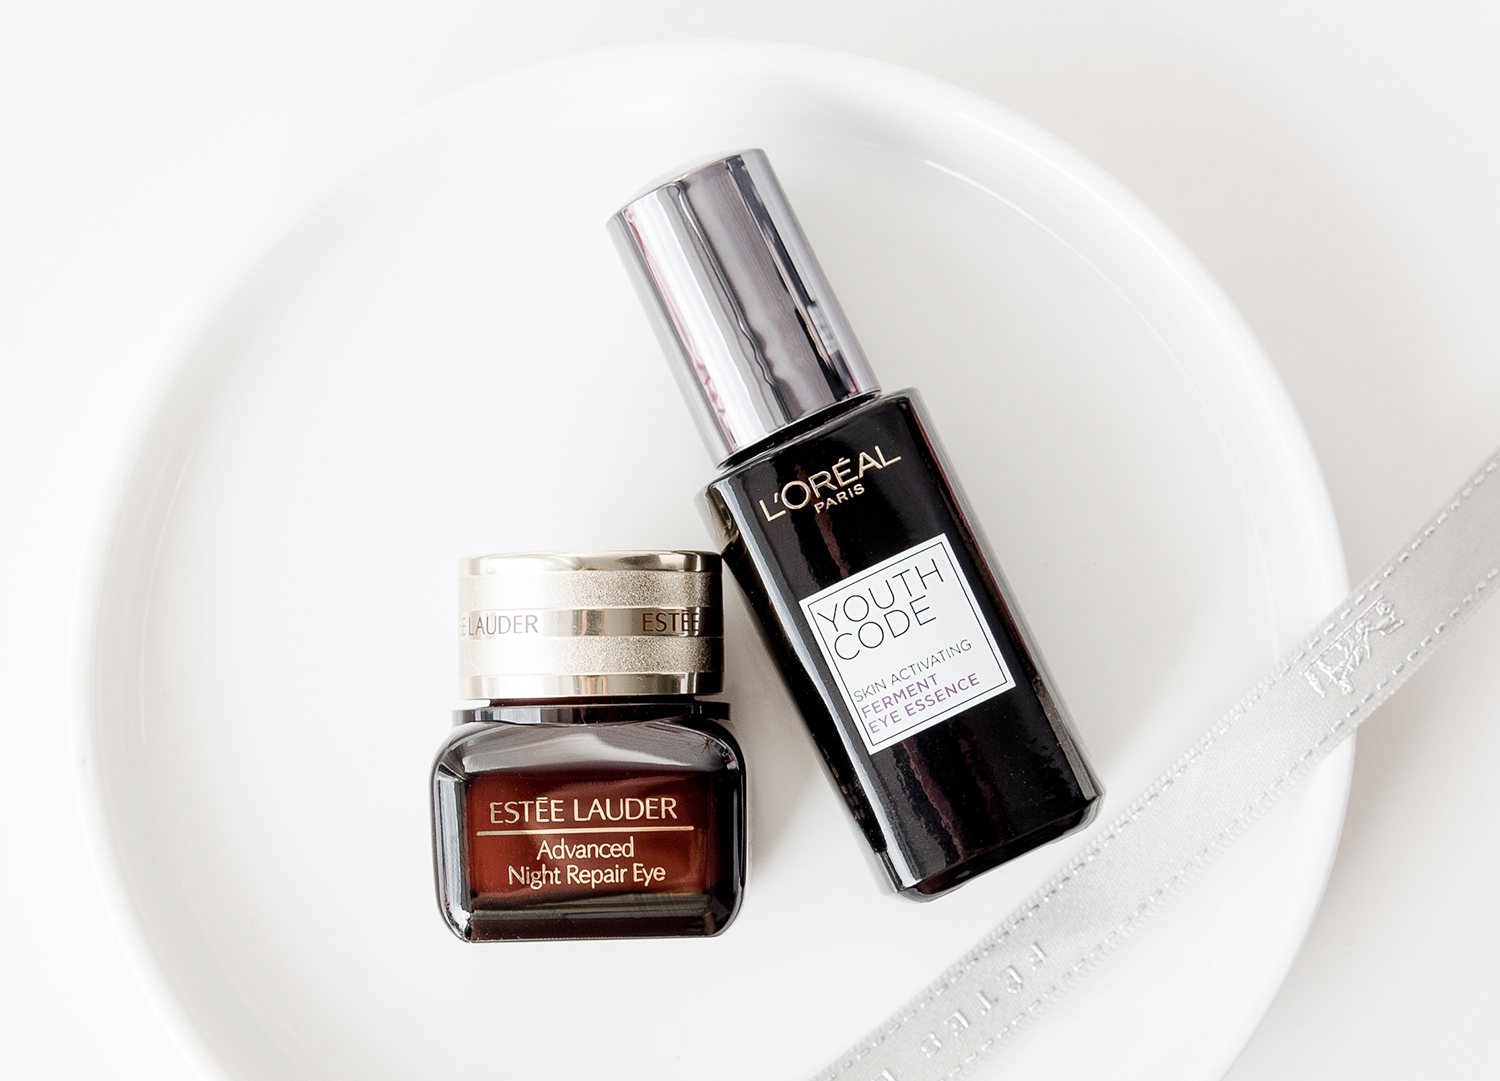 Estee Lauder Advanced Night Repair Eye Cream by The Skinny Scout